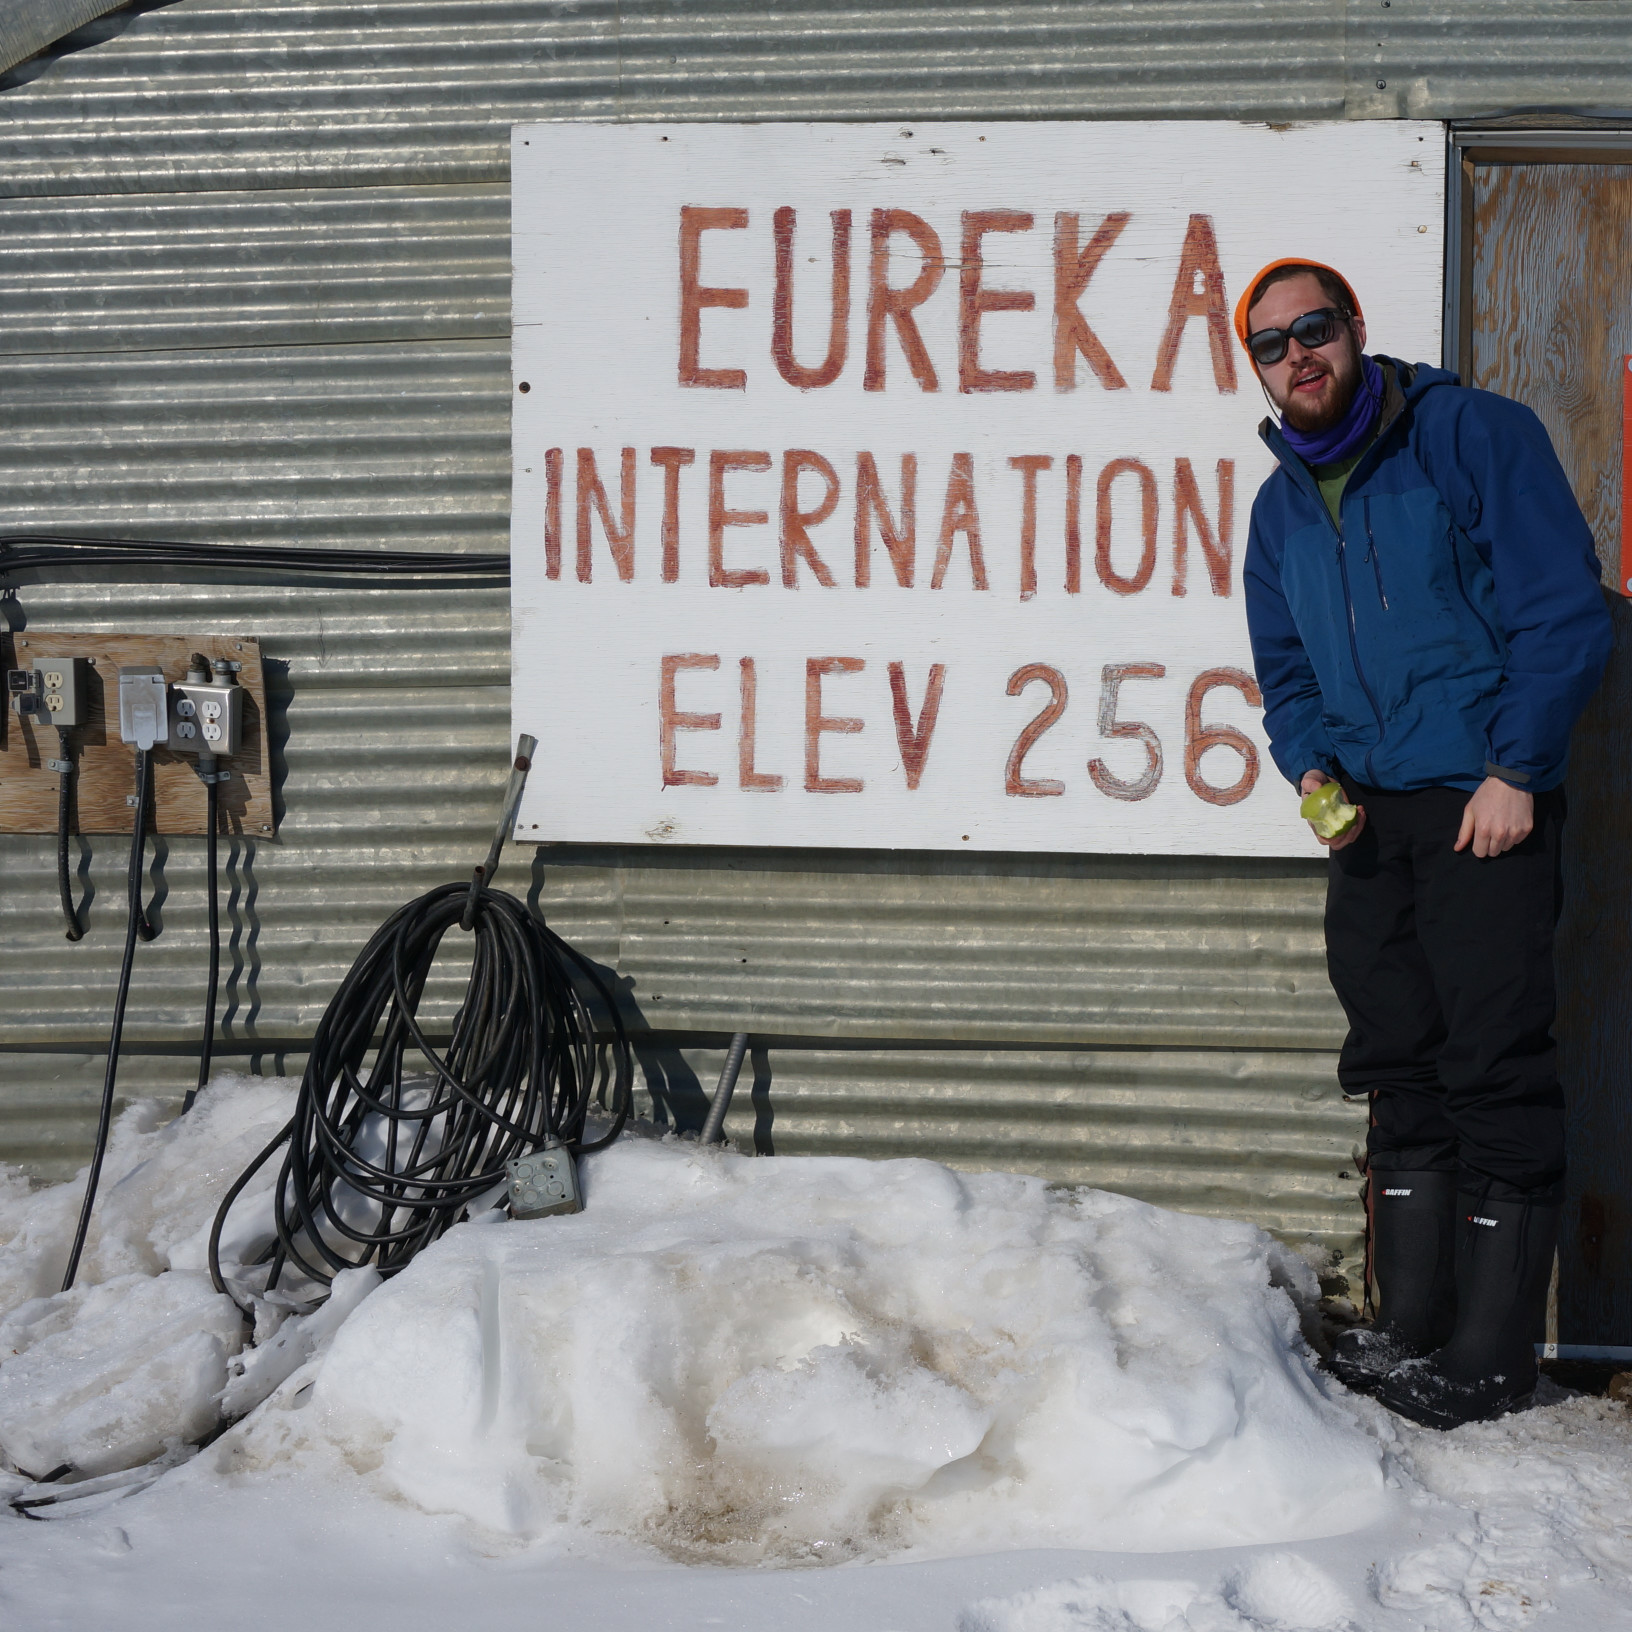 Graduate student Graham Colby is standing outdoors in front of a cabin with his feet in the snow. He is dressed in winter gear and wearing sunglasses. Behind him, affixed on the cabin, is a sign that says EUREKA INTERNATIONAL ELEV 256.